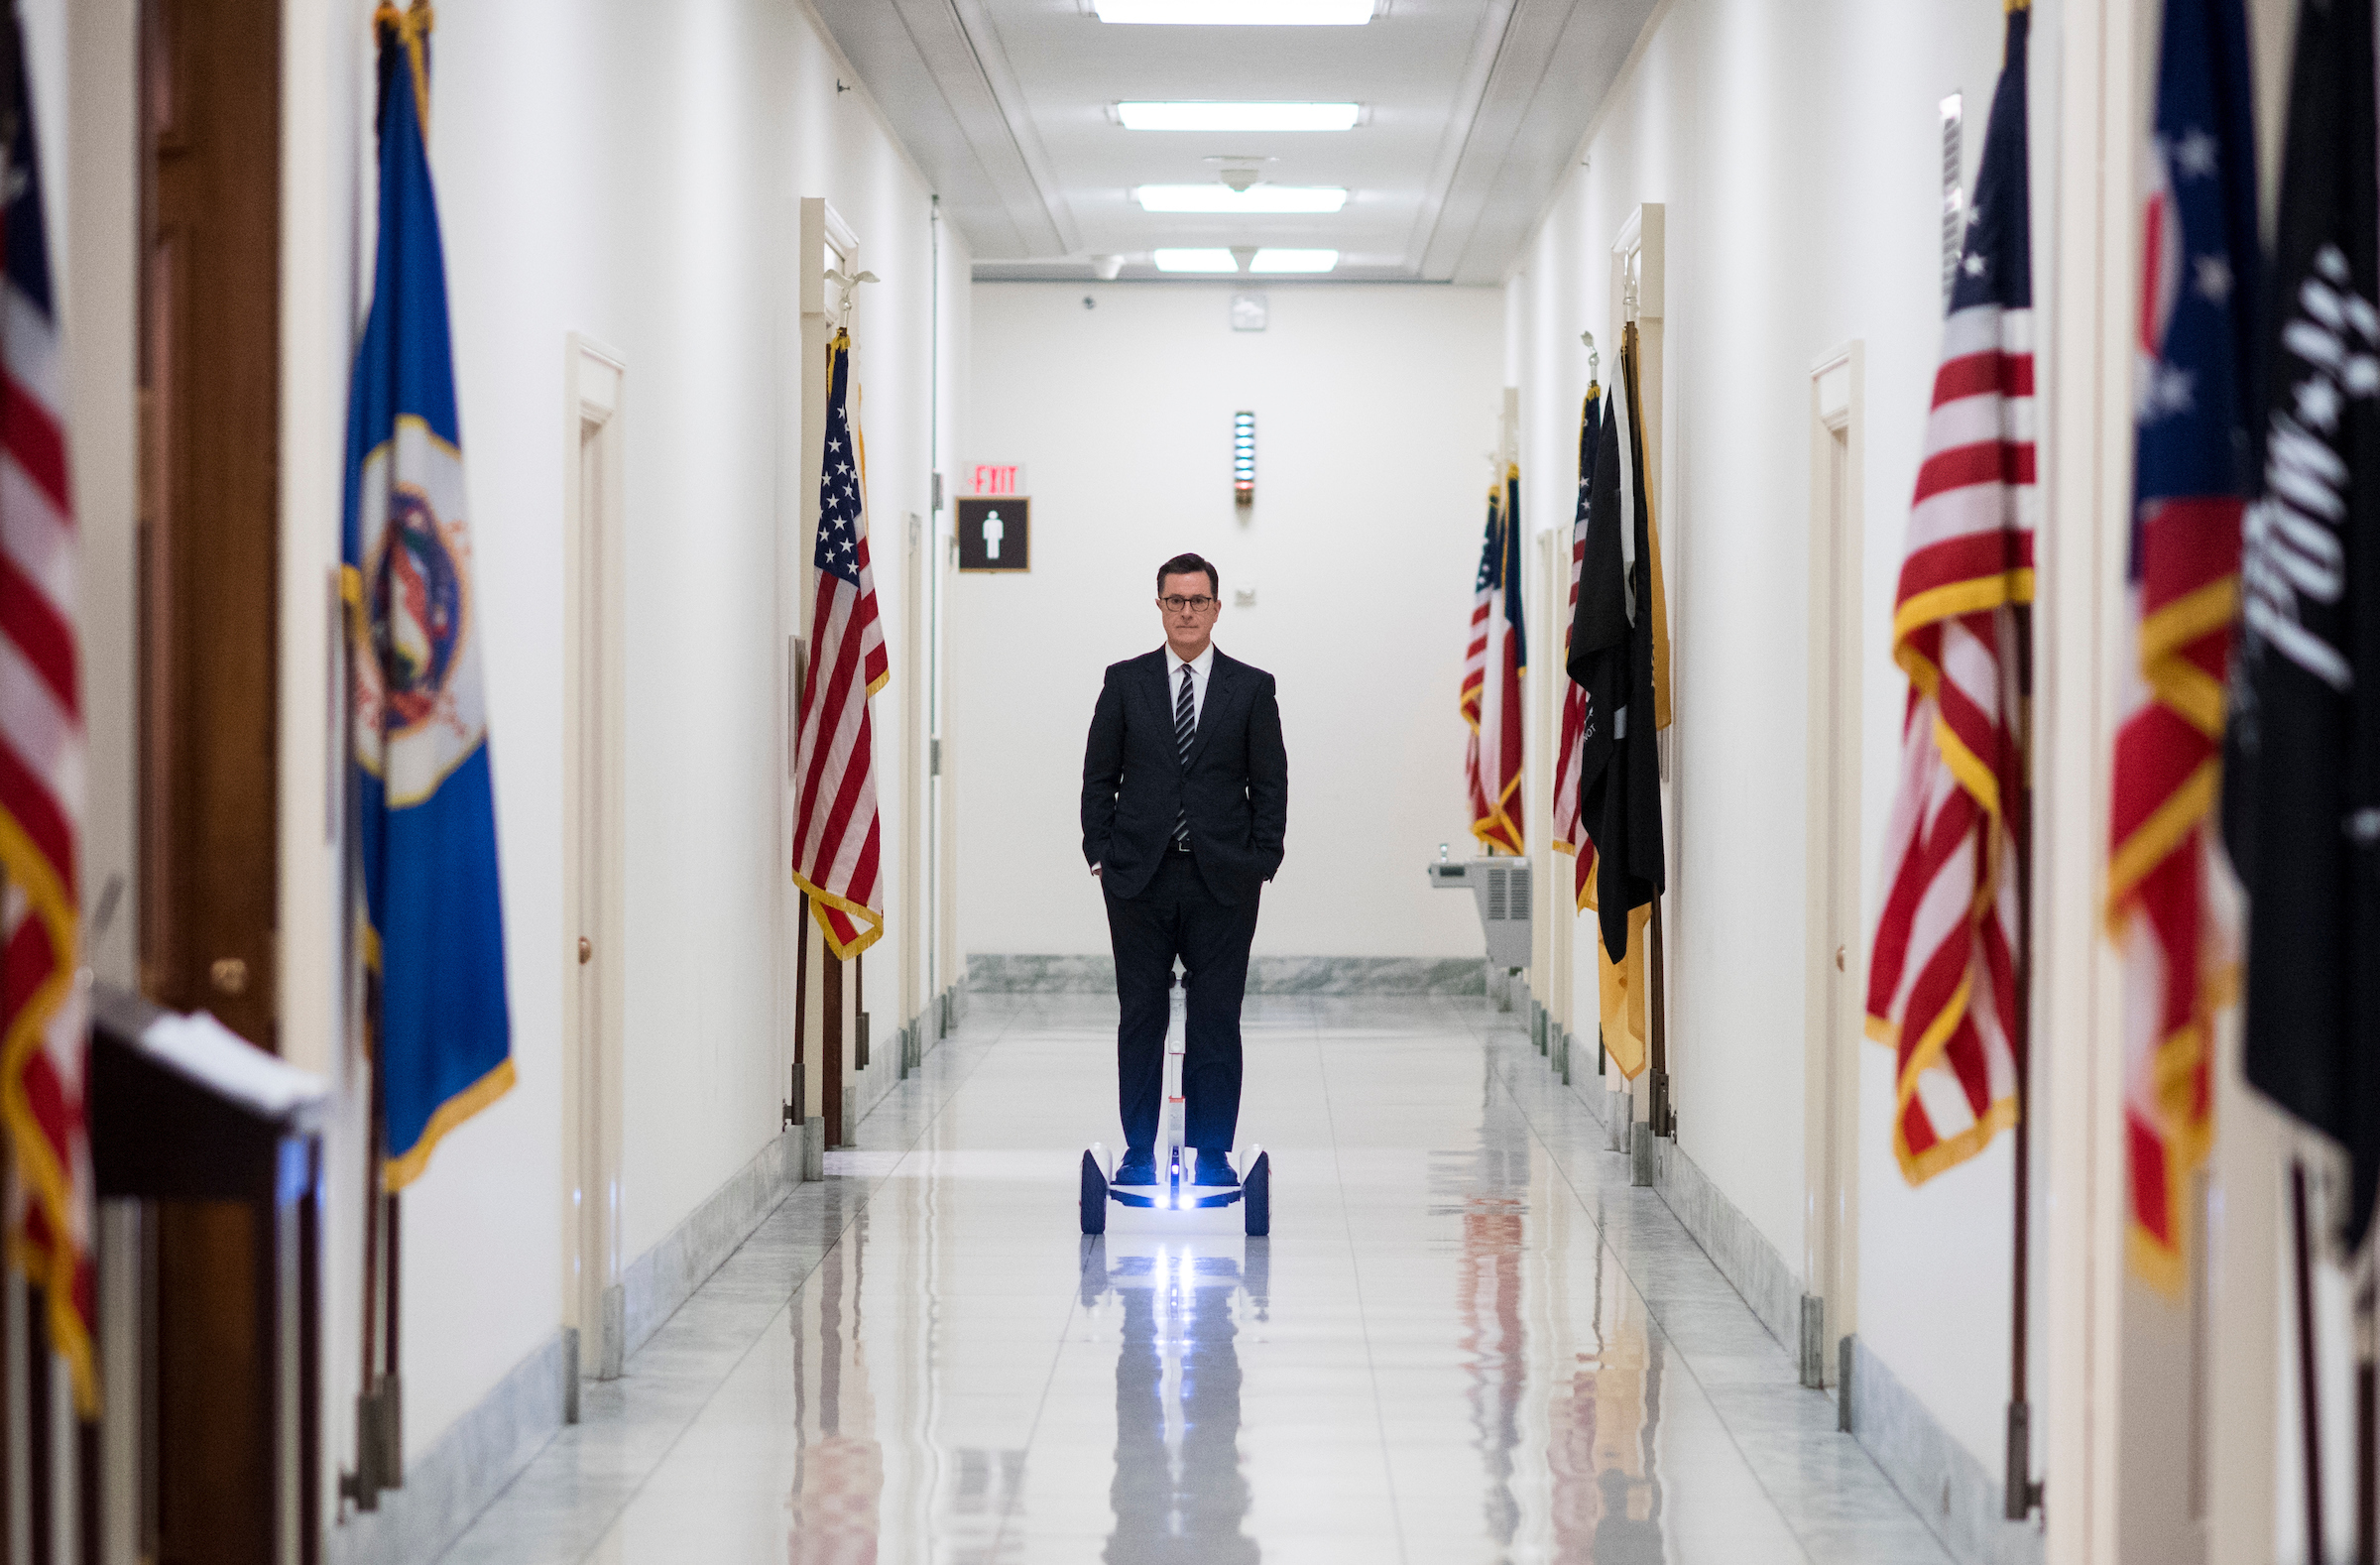 Stephen Colbert rides a Segway down the hallway outside of Rep. Adam Schiff's office in the Rayburn House Office Buidling on Tuesday, Feb. 13, 2018. Colbert was on Capitol Hill for an interview with Rep. Schiff. (Photo By Bill Clark/CQ Roll Call)